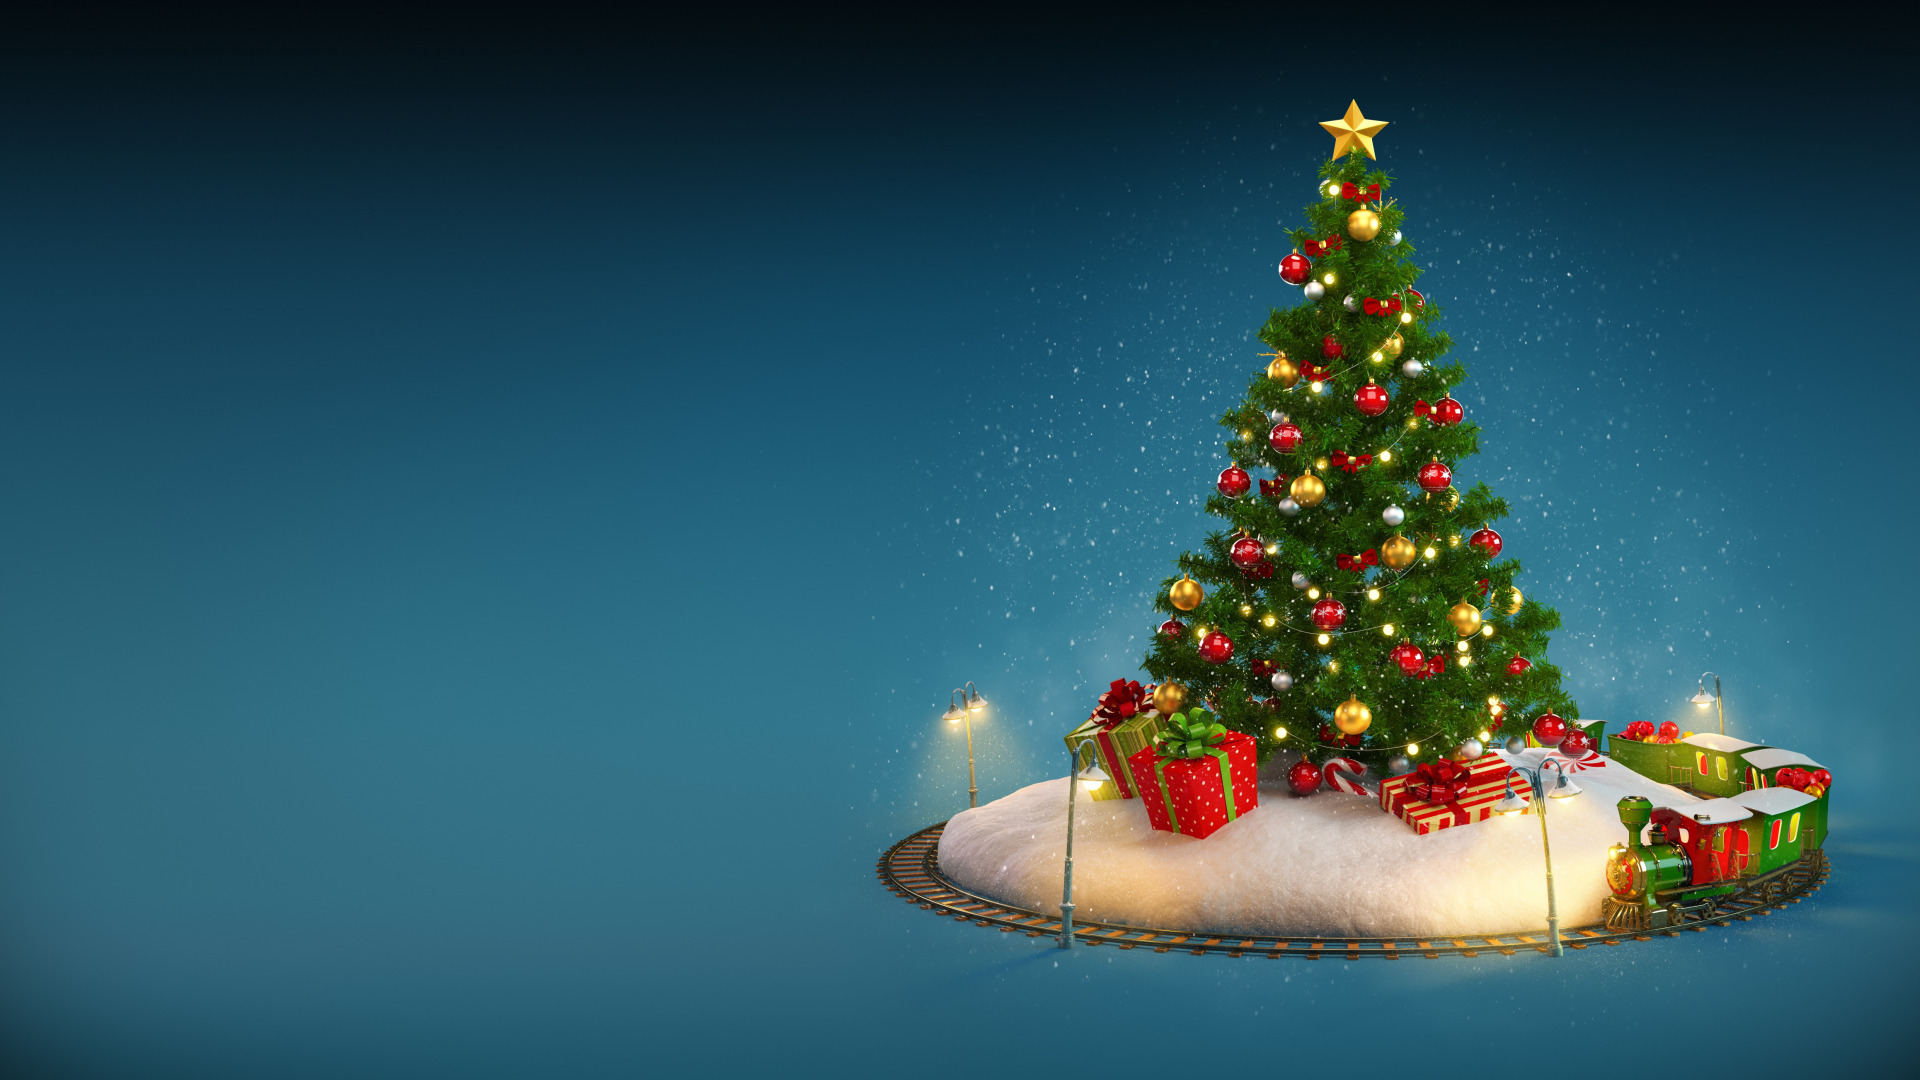 Downloadable christmas tree pictures 23 Mind-Blowing Photography Website Templates